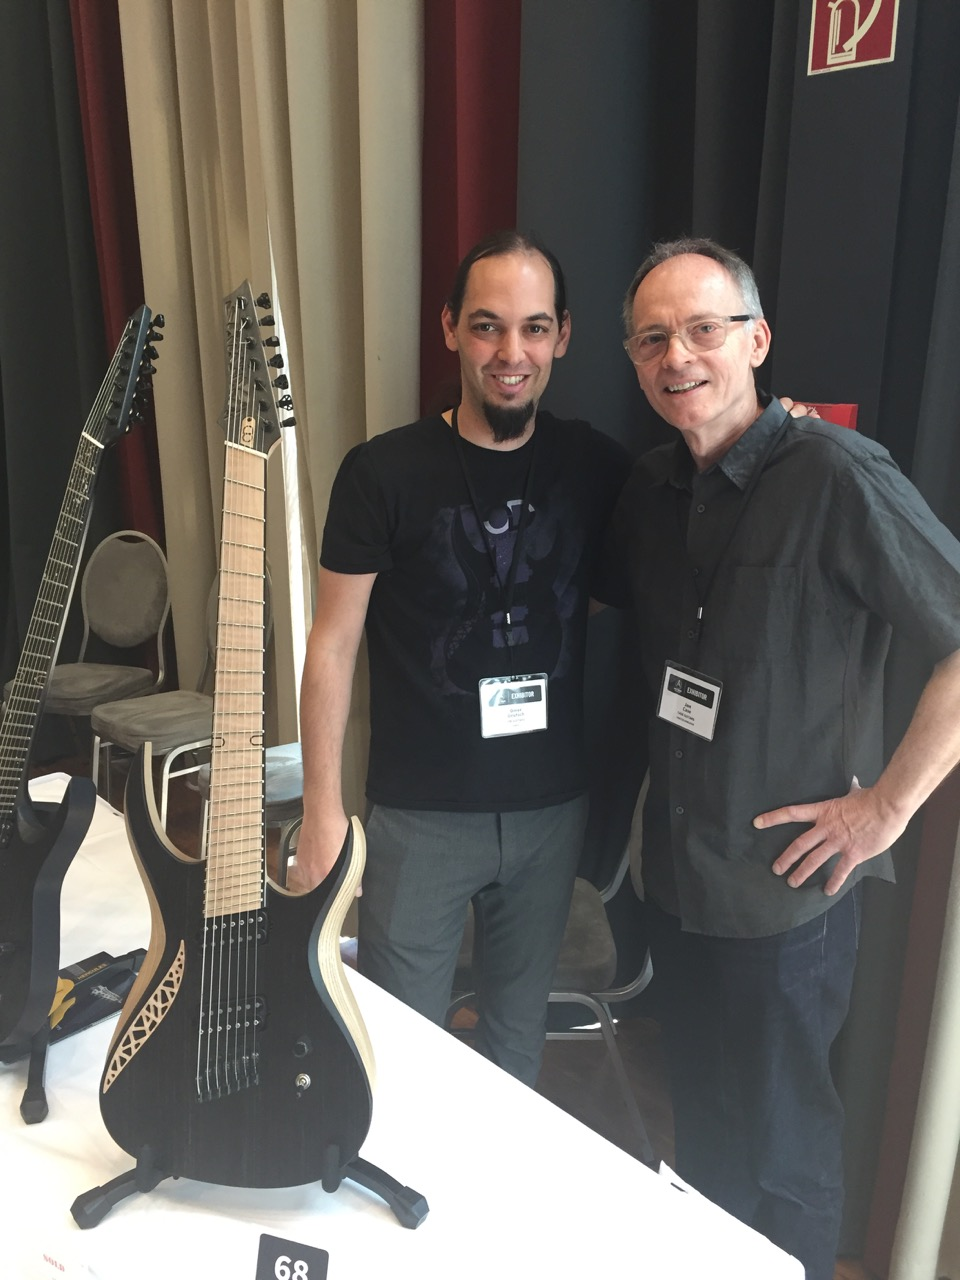 Omer Deutsch of OD Guitars with Jon Case